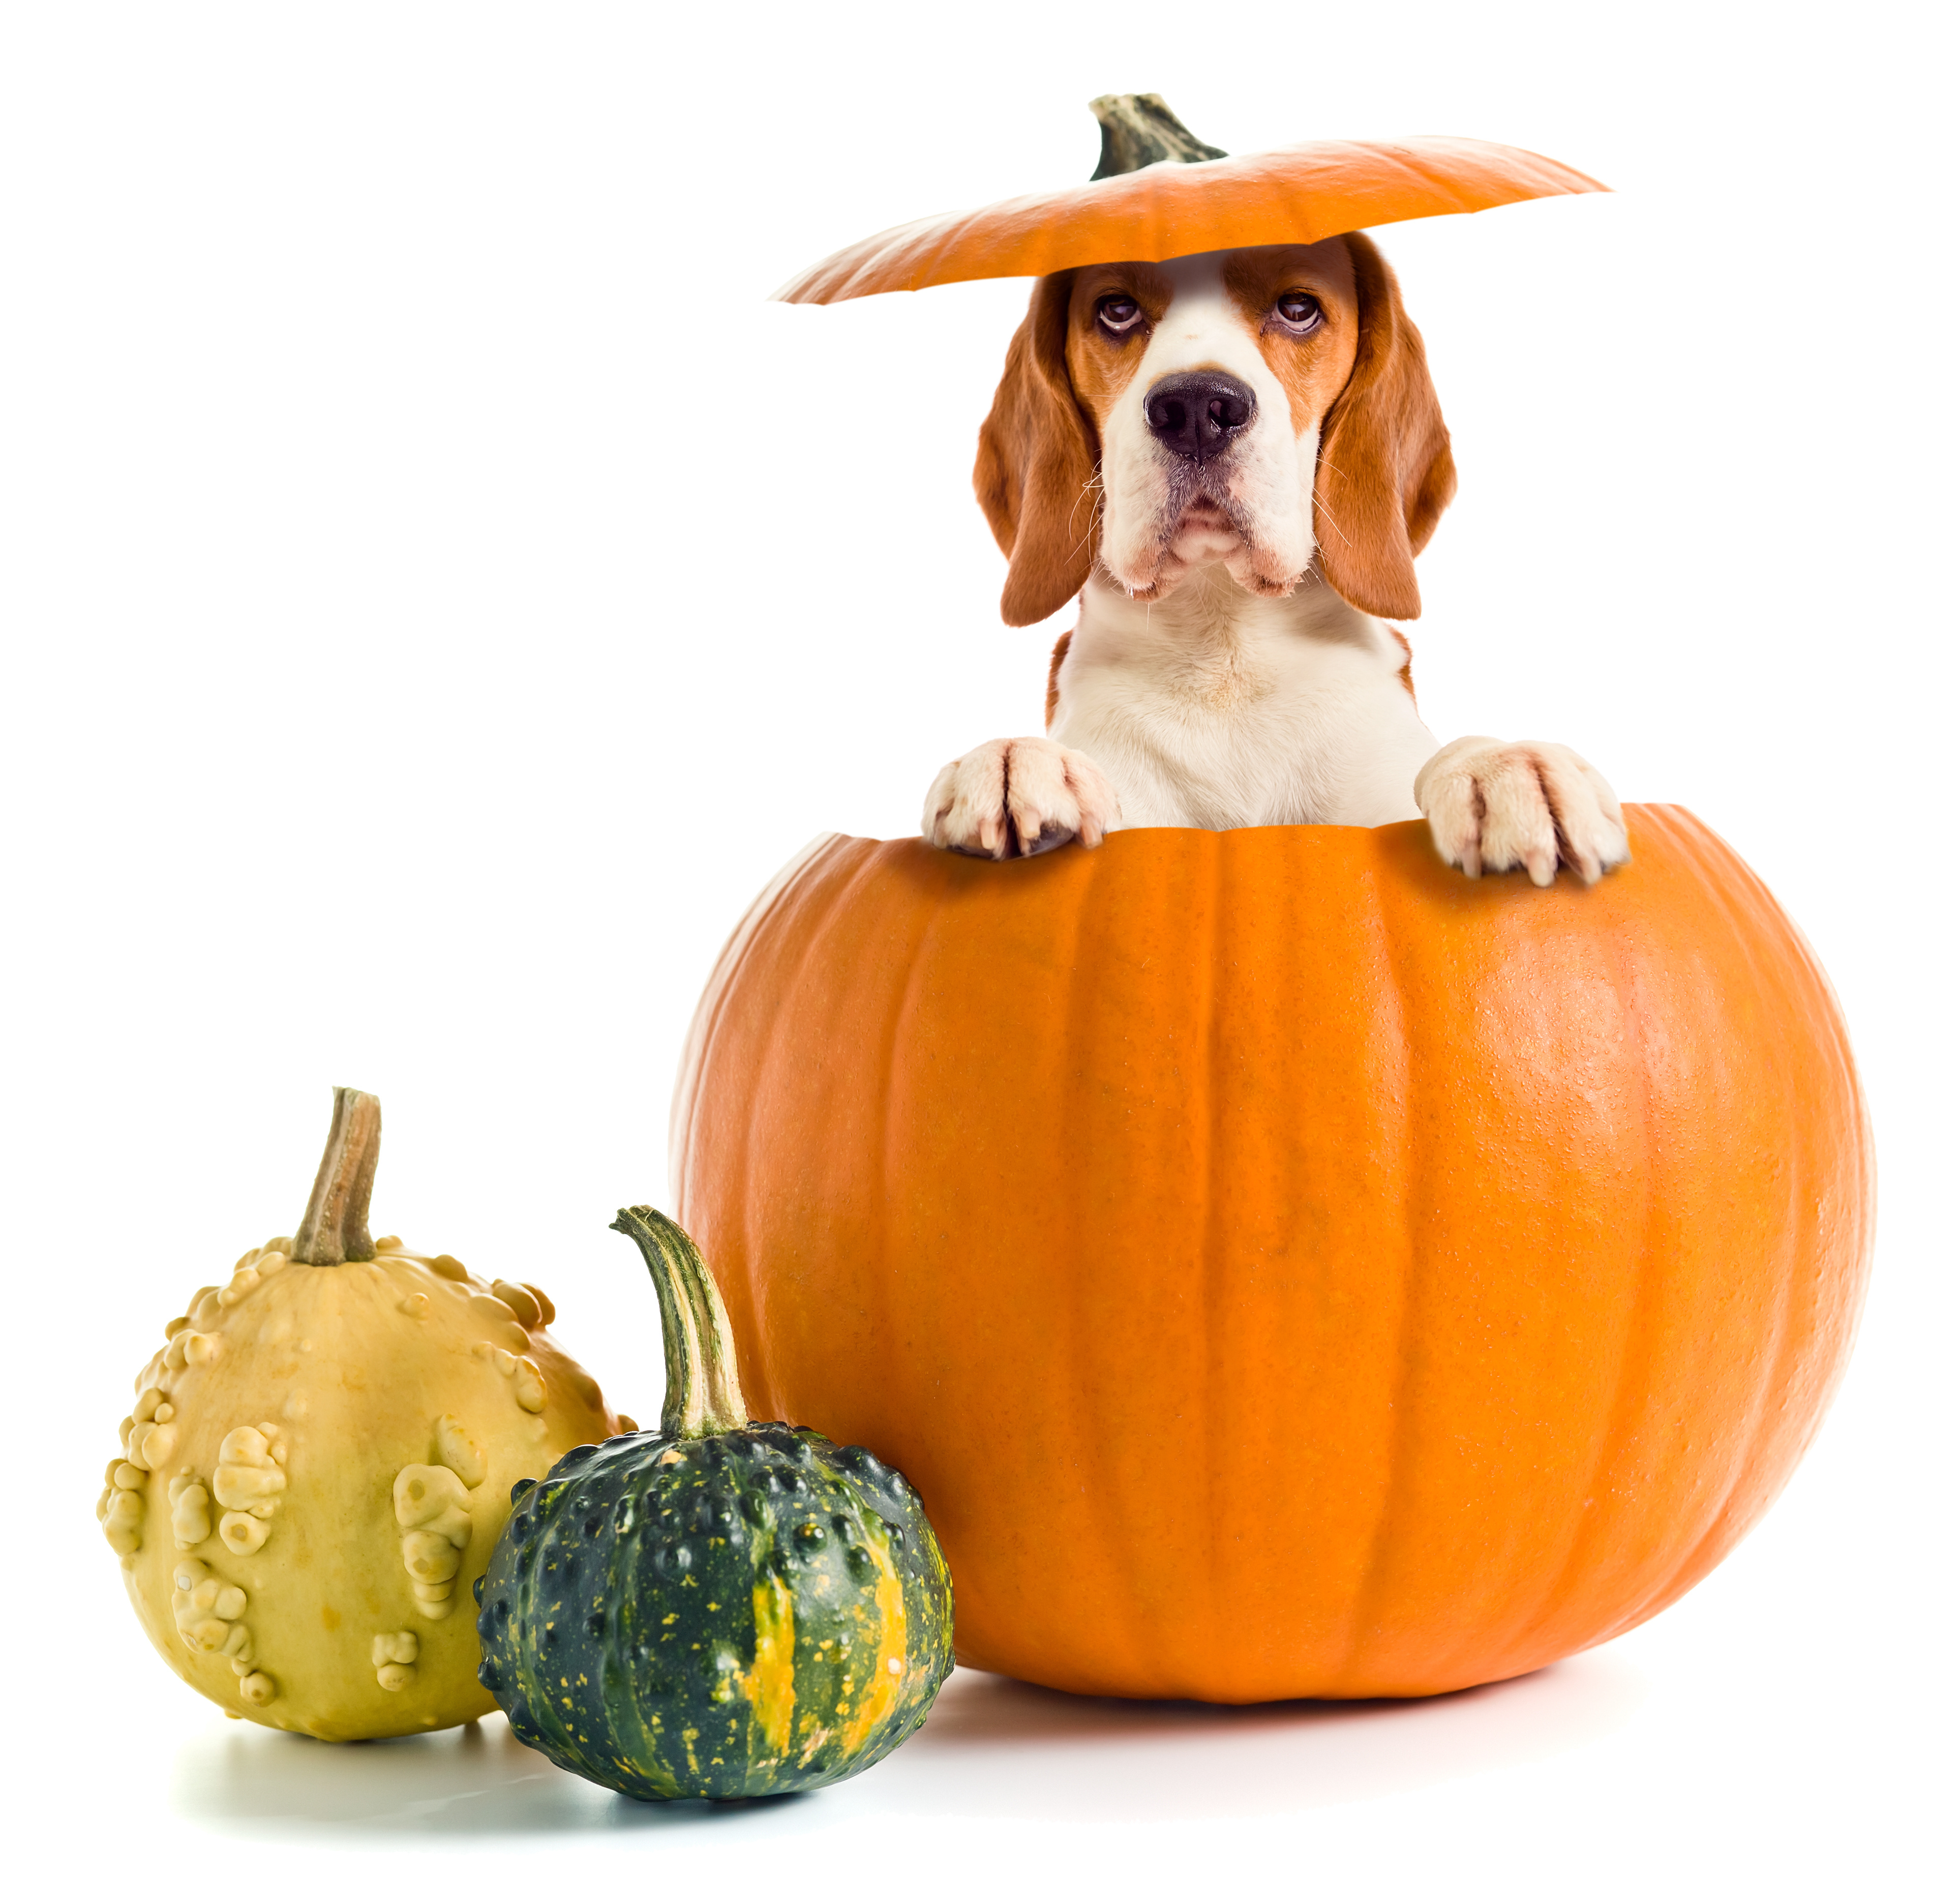 Do it yourself pet costumes archives professional pet sitting etc professional pet sitting etc solutioingenieria Image collections